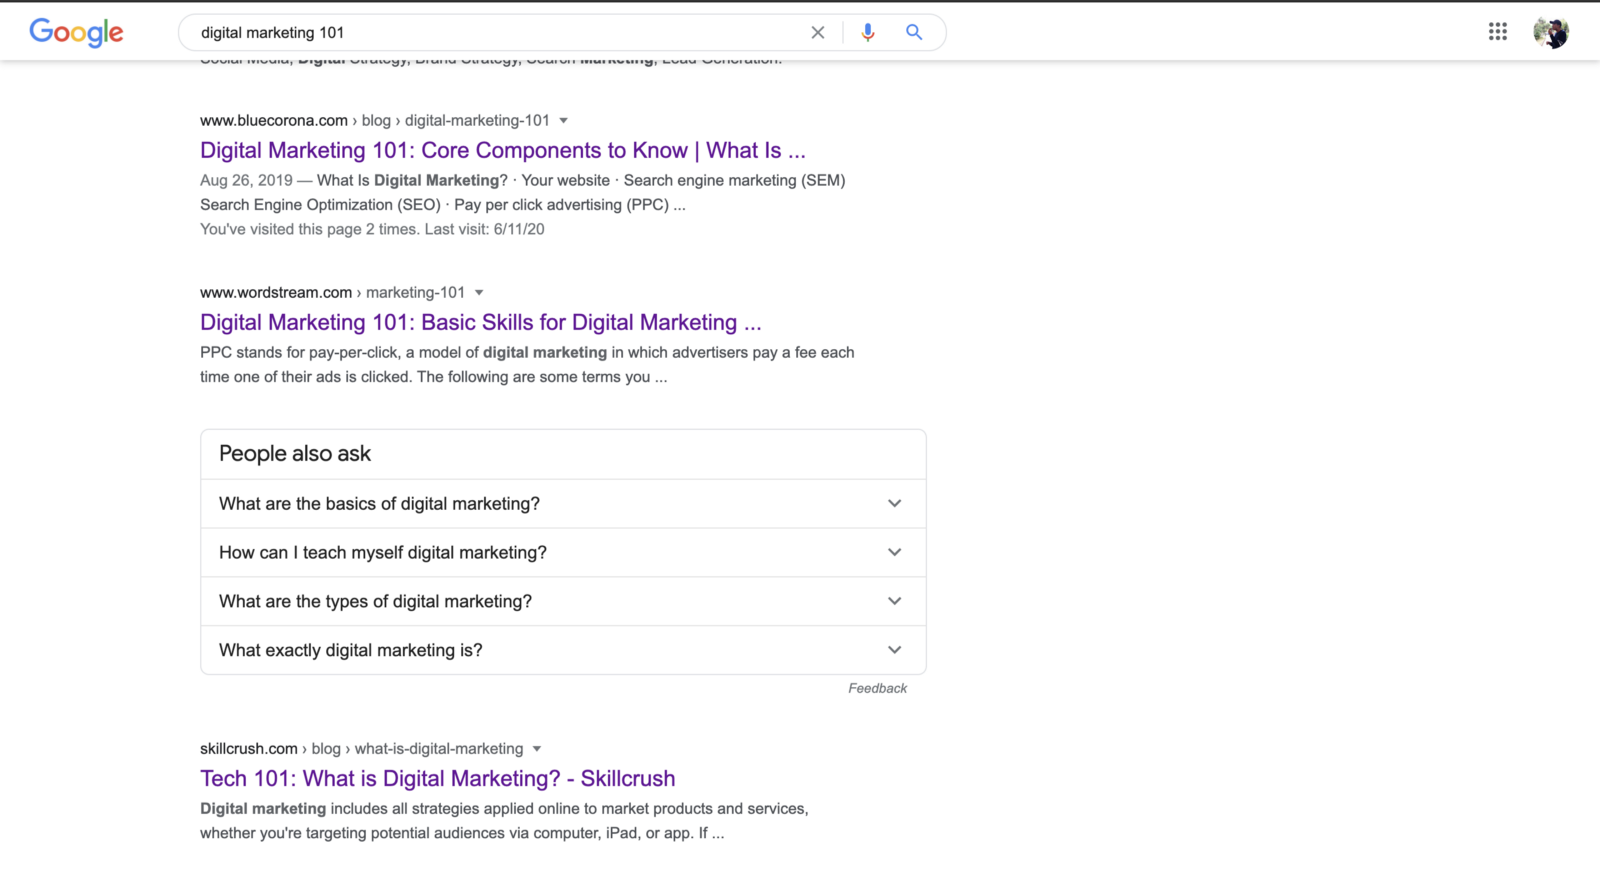 Google Digital Marketing 101 搜尋結果